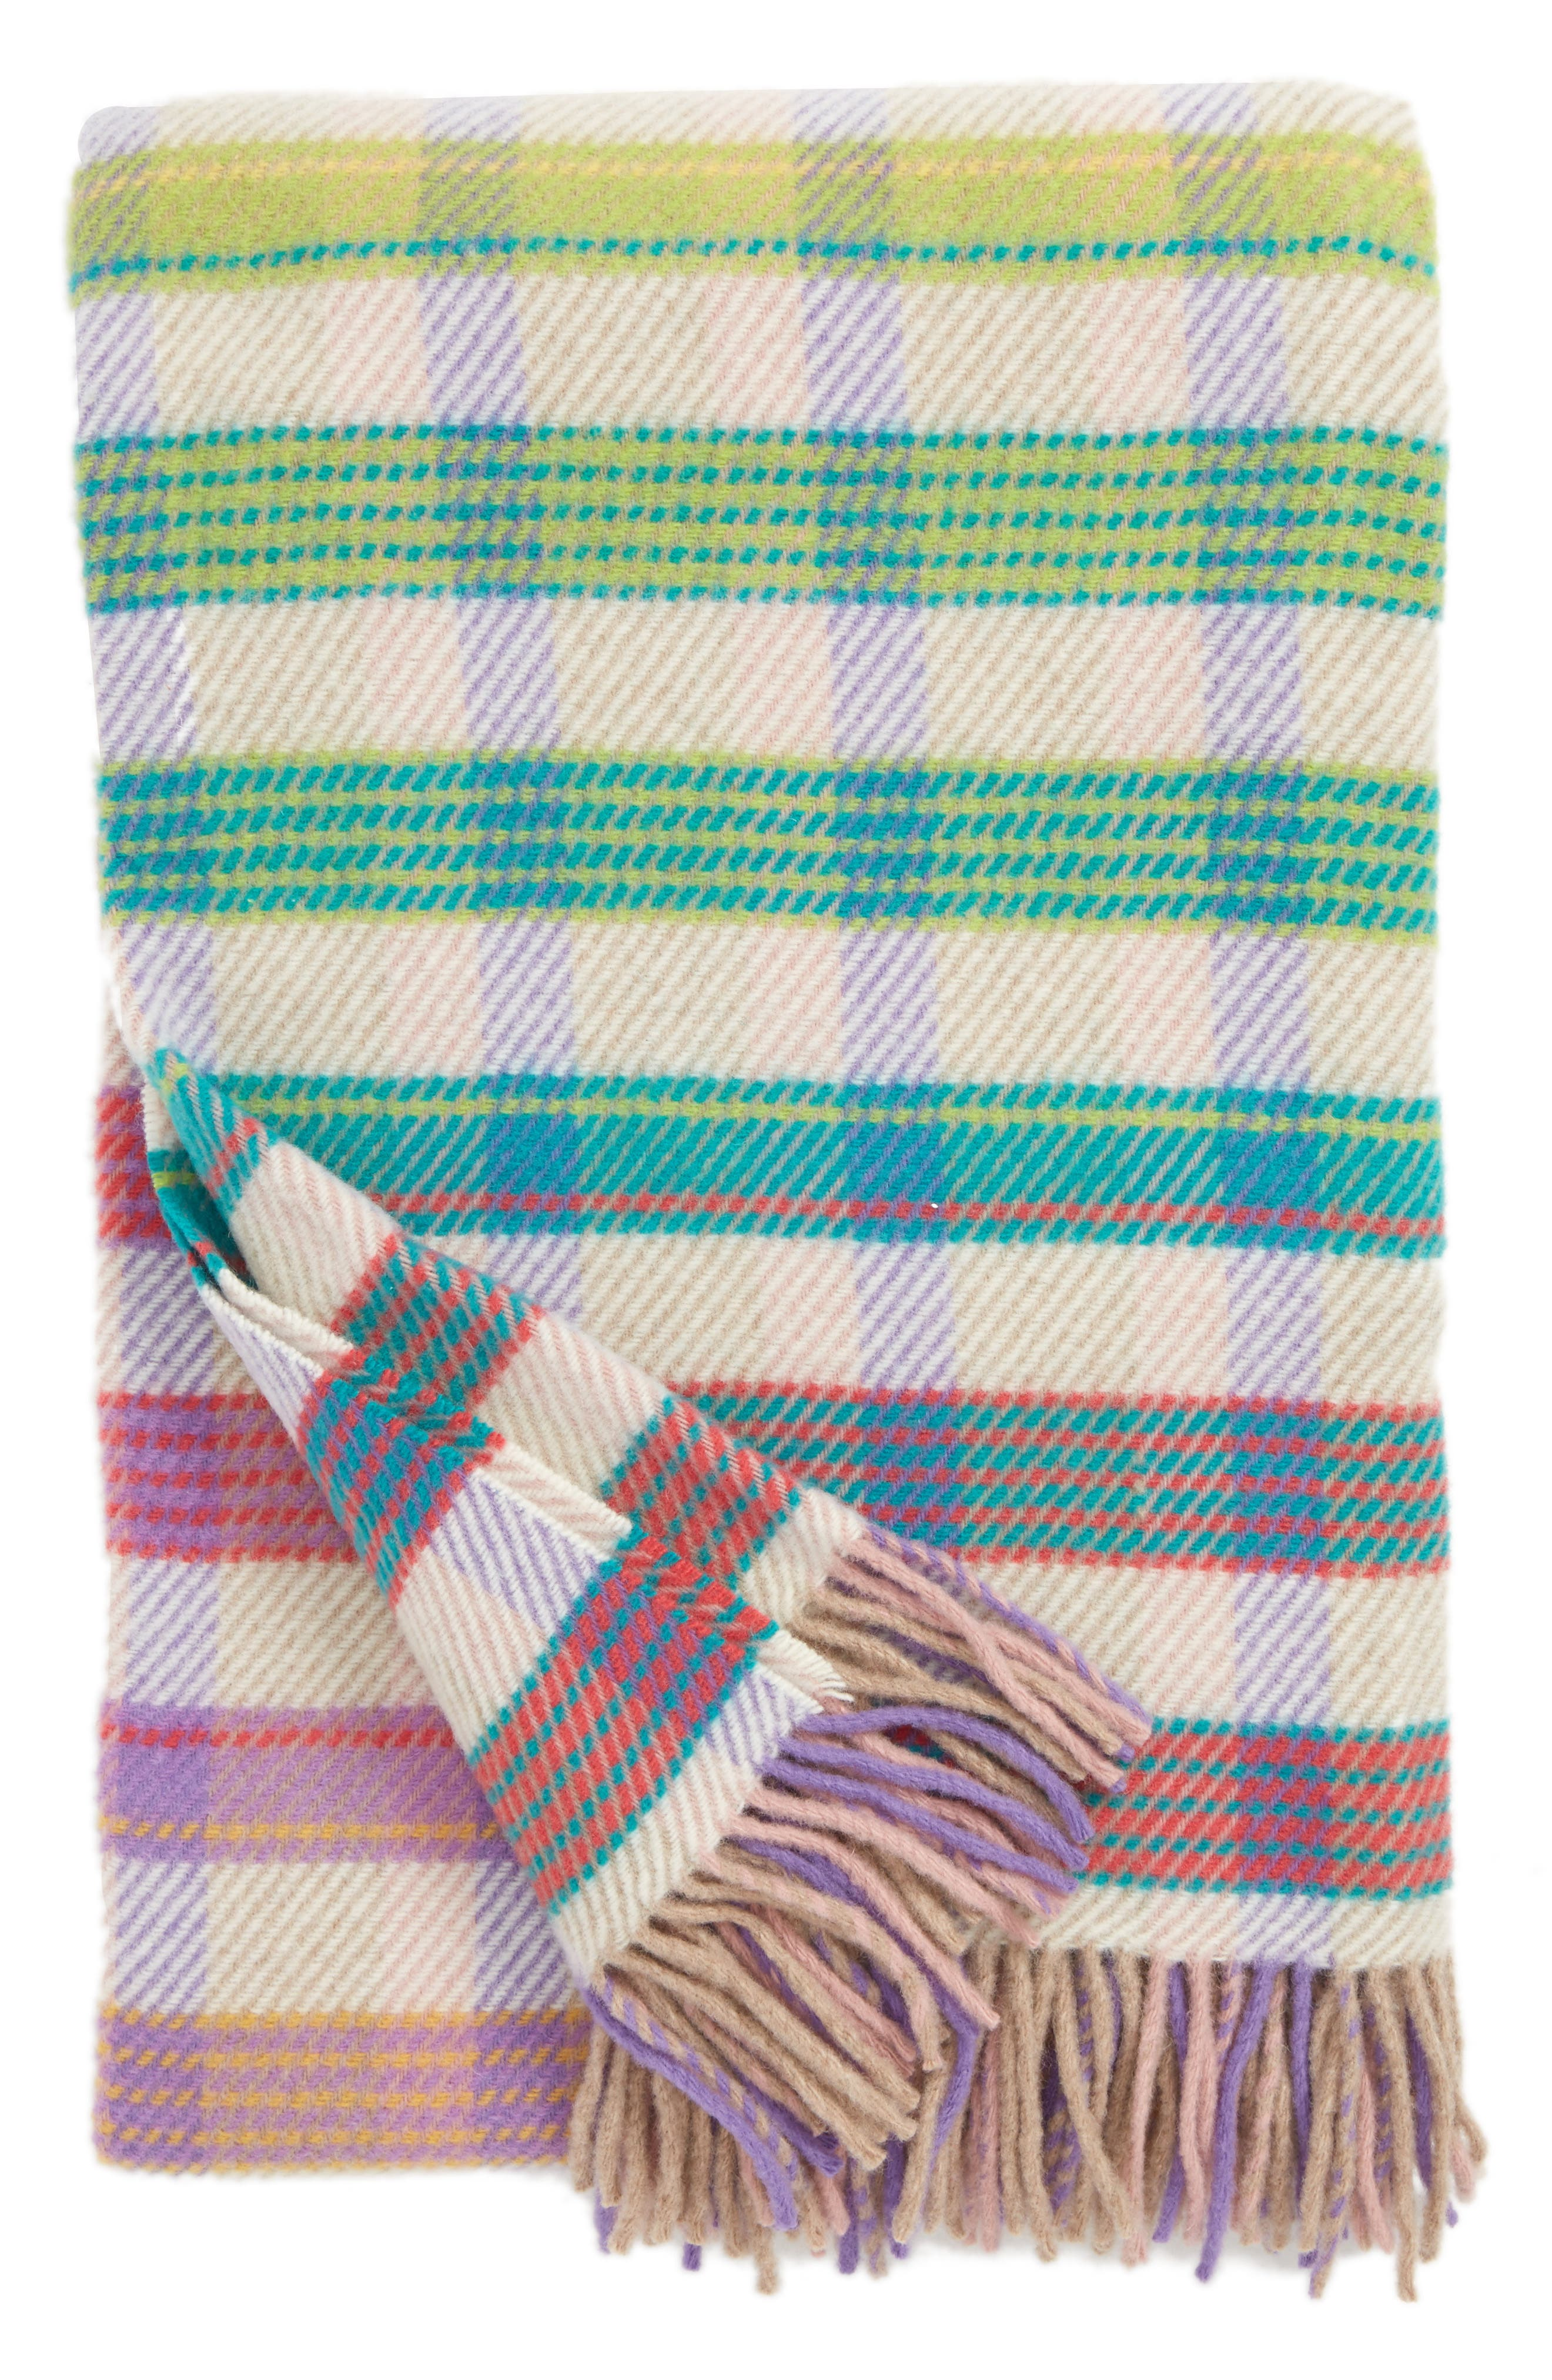 Tiziano Wool Throw Blanket,                             Main thumbnail 1, color,                             Multi Color